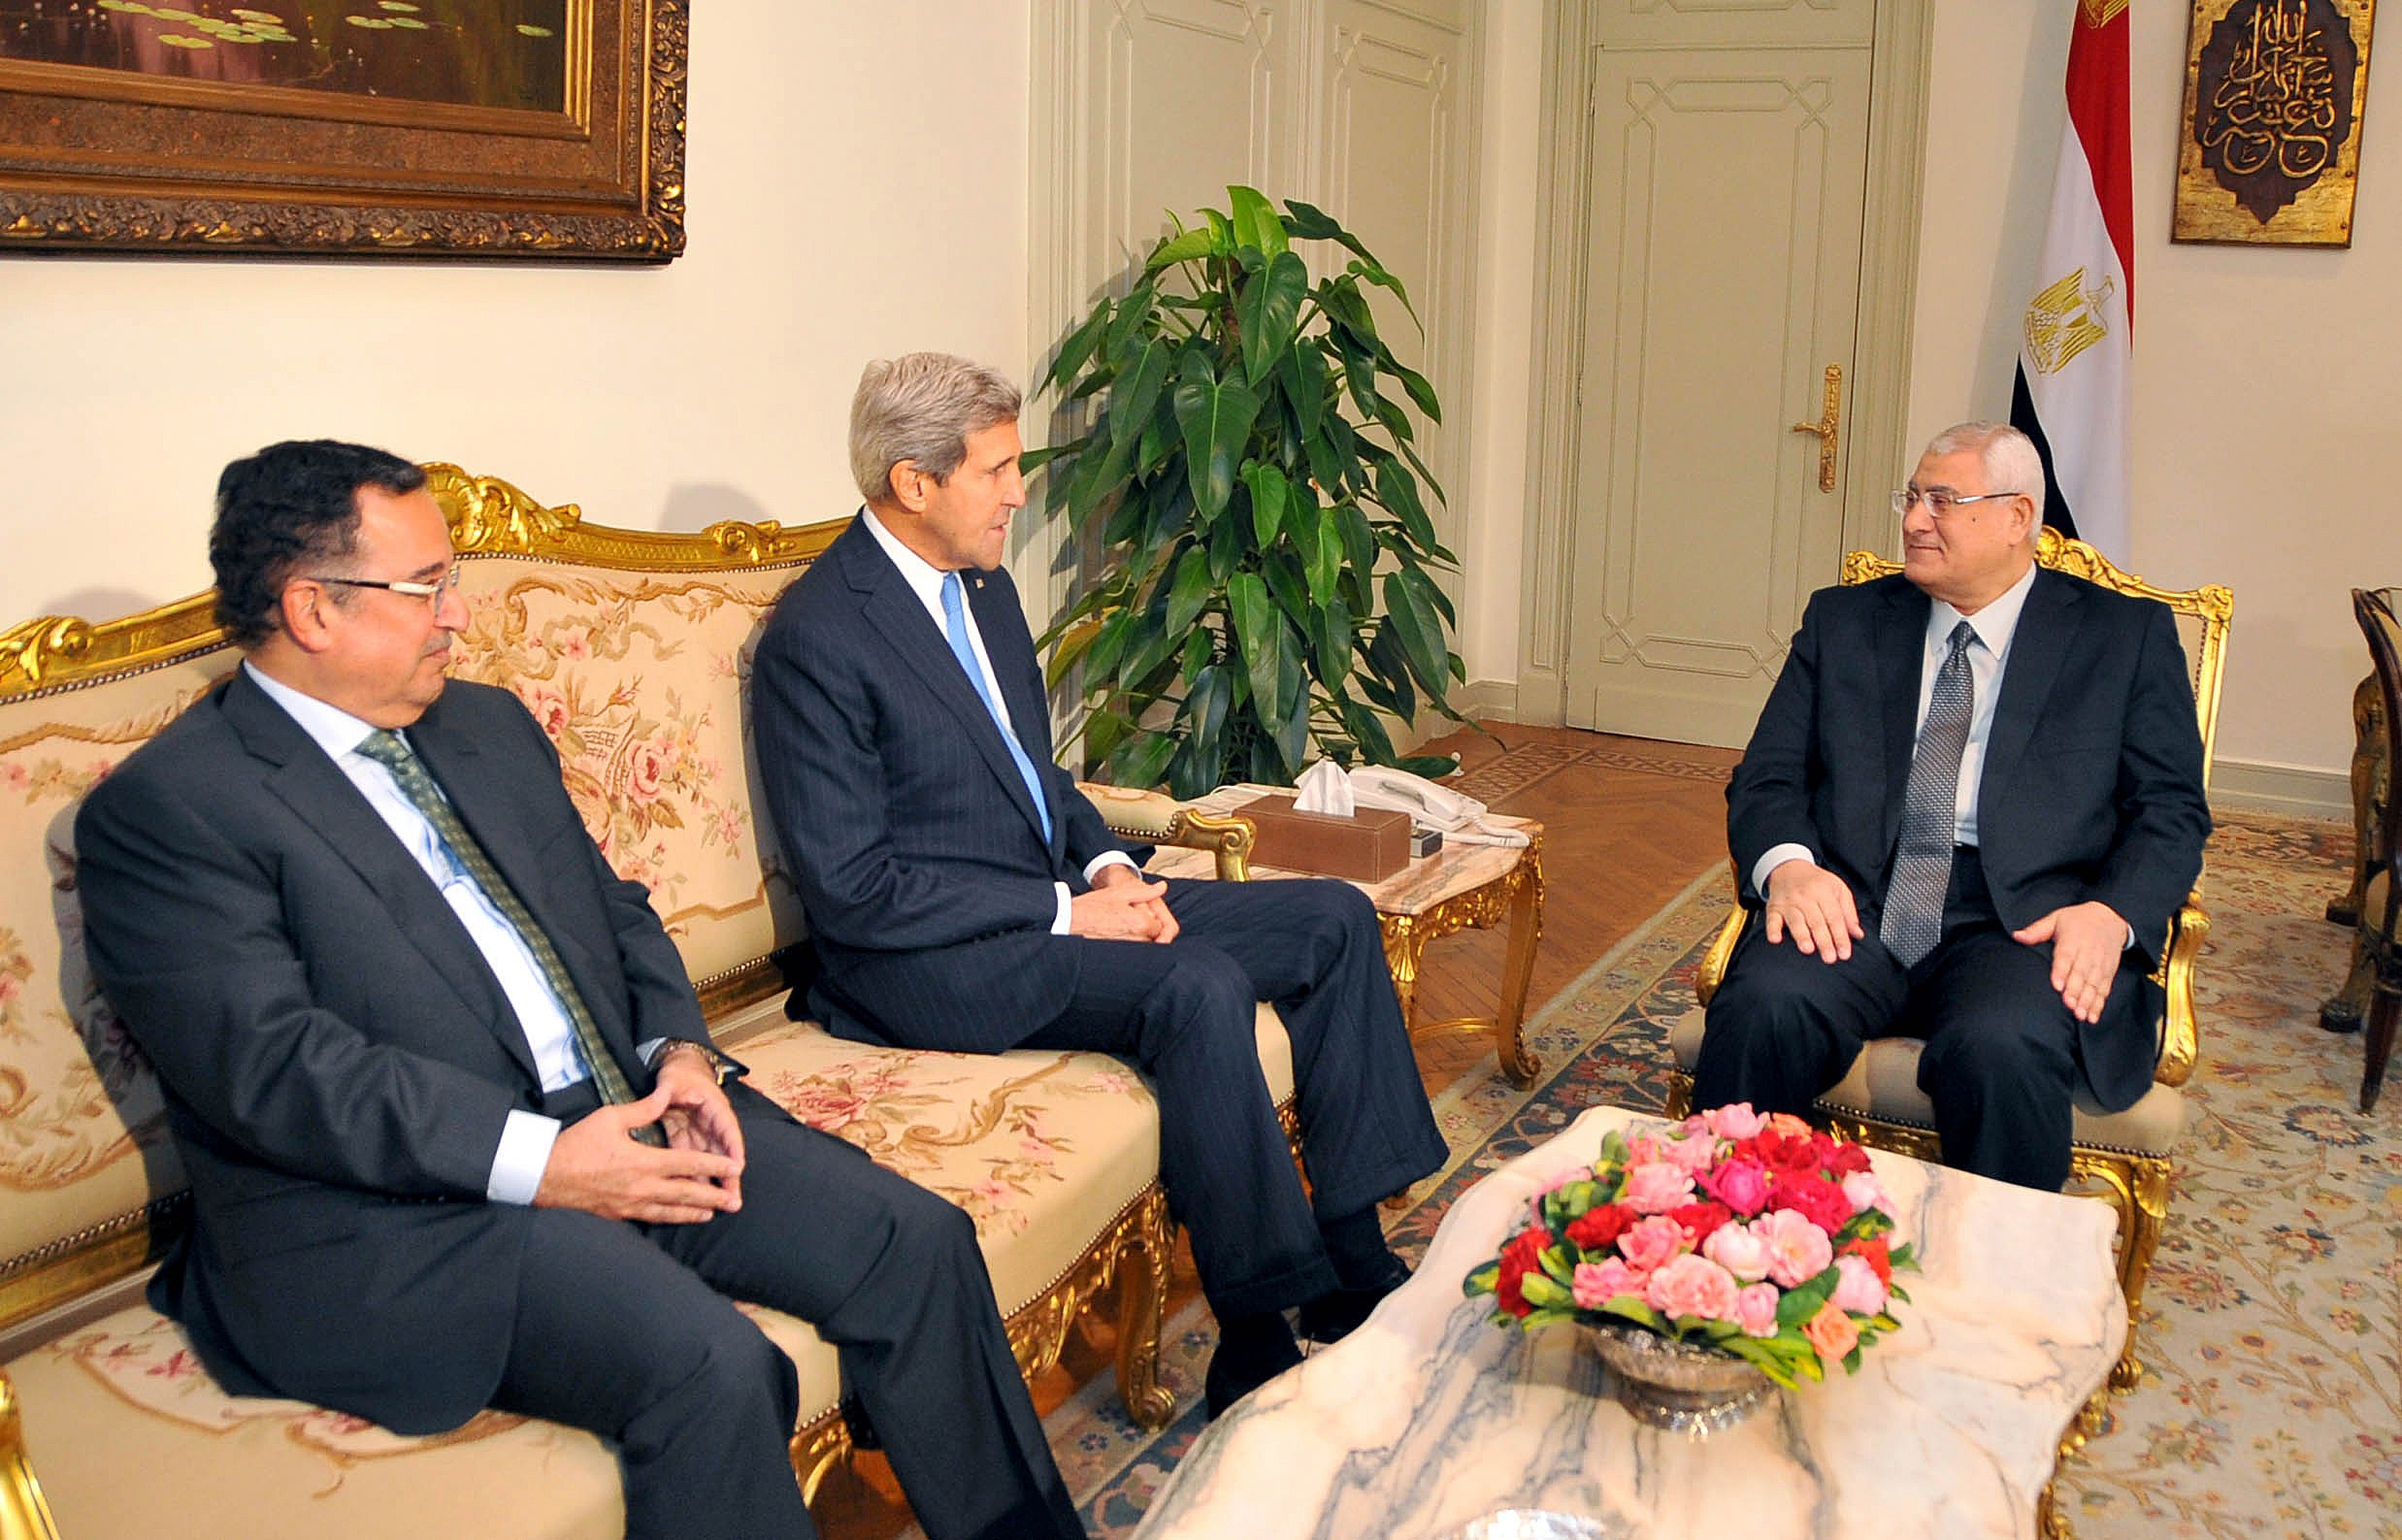 handout picture released by Egyptian presidency shows Egypt's interim President Adly Mansour (R) meeting with United States Secretary of State John Kerry (C) and Egyptian Foreign Affairs Minister Nabil Fahmy (L) on November 3, 2013 at the presidential palace in Cairo.  AFP PHOTO / EGYPTIAN PRESIDENCY)